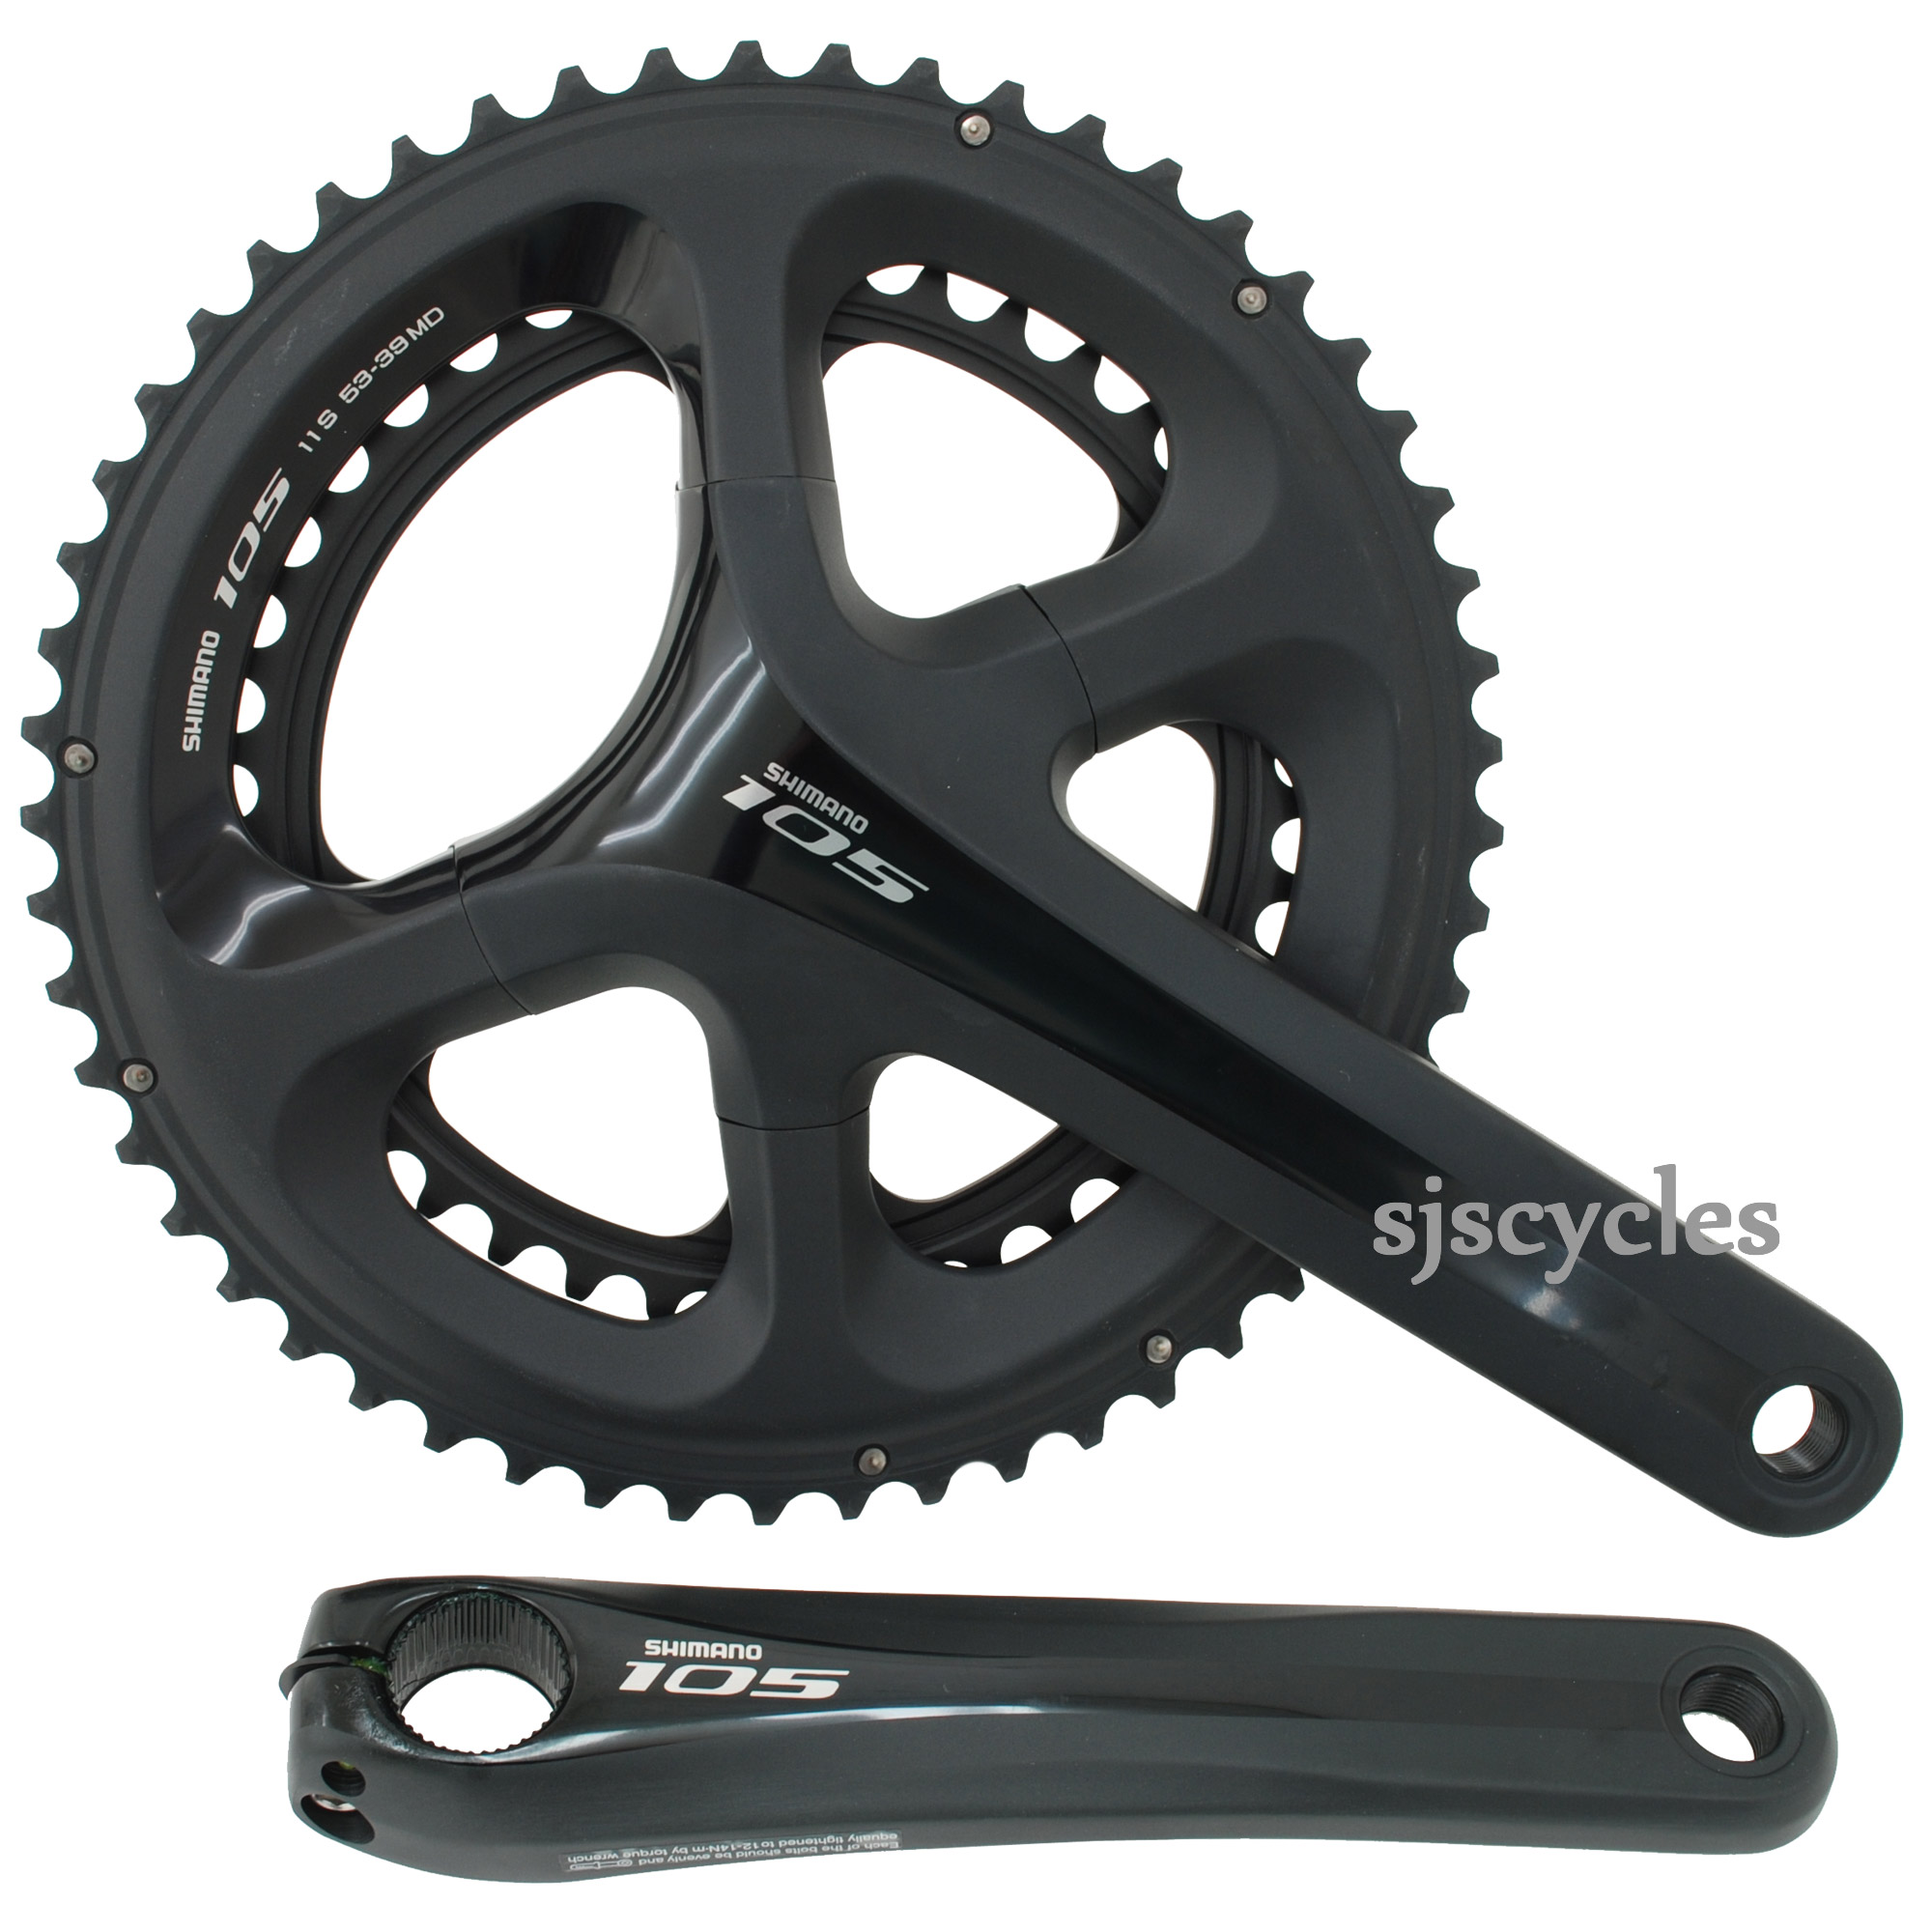 Shimano 105 Fc 5800 11 Spd Double Chainset Speed View Supersize Image